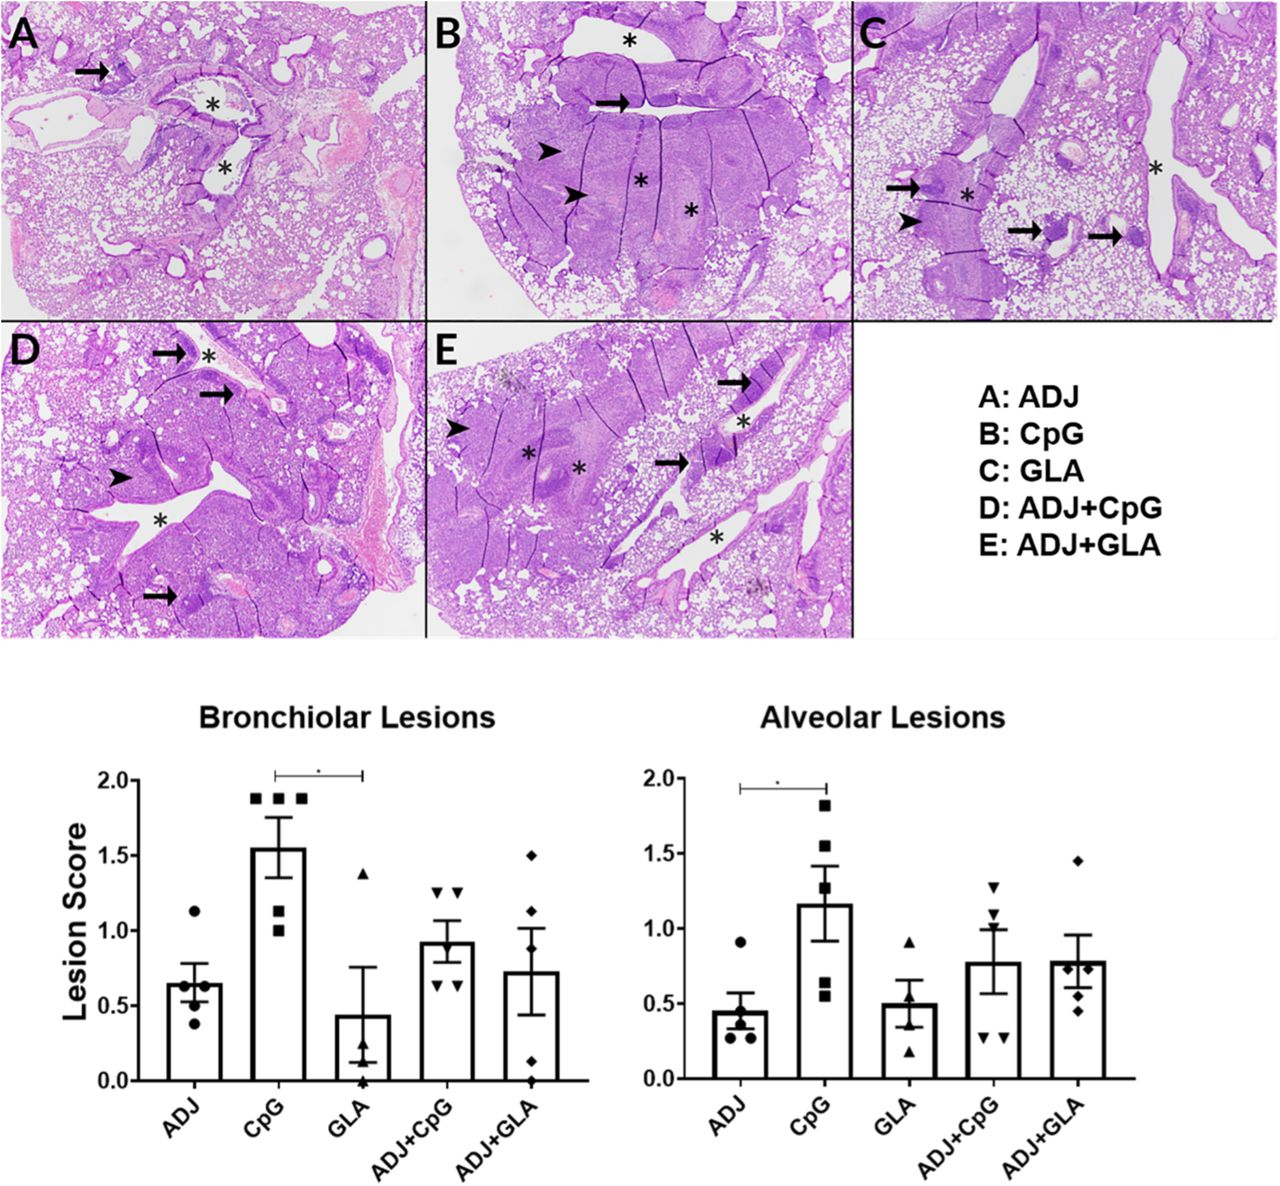 Histopathological analysis of lungs following viral challenge of vaccinated mice. Groups of C57BL/6 mice were vaccinated twice (at 3 weeks interval) with NP protein formulated in various adjuvants. At 100 days after booster vaccination, vaccinated mice were challenged intranasally with H1N1/PR8 strain of influenza A virus. On the 6 th day after viral challenge, lungs were collected in neutral-buffered formailin, and tissue sections were stained with Hematoxylin and Eosin (H E). H E stained lung sections were evaluated by a board-certified pathologist (Dr. Gasper); he was blinded to the identity of sections. In each image (40X magnification), asterisks indicate similarly sized large bronchioles, arrow heads indicate regions in which bronchial lesions extend in to the adjacent alveoli, and arrows indicate perivascular lymphoid nodules. A. Adjuplex-vaccinated mouse: there is mild necrotizing bronchitis asterisks). B. CPG-vaccinated mouse: there is obliteration of two bronchioles by inflammation that extends far into the surrounding alveoli (arrowheads). C. GLA-vaccinated mouse: there is bronchiolitis affecting 1 of the larger bronchioles, with minimal extension into the adjacent alveoli. D. ADJ+CPG-vaccinated mouse. Broncholitis is similar to that in A, but alveolar regions around the affected bronchiole (center) are infiltrated by inflammatory cells. E. ADJ+GLA vaccinated mouse: bronchiolitis is of intermediate severity between B and C, and regionally extends into the adjacent alveolar tissue (arrowhead). Each lung section was scored individually, and lesion scores from 0-3 were assigned for bronchial lesions, alveolar lesions, and specific disease patterns, with 0 = absent, 1 = mild, 2 = moderate, 3 = severe. Bronchioloar Lesions: Epithelial degeneration/necrosis; Intraepithelial neutrophils; Intraepithelial eosinophils; Intraepithelial lymphocytes; Luminal dislodged epithelial cells/debris; Luminal cellular exudate; Peribronchiolar neutrophils; Pavementing/Subendoth